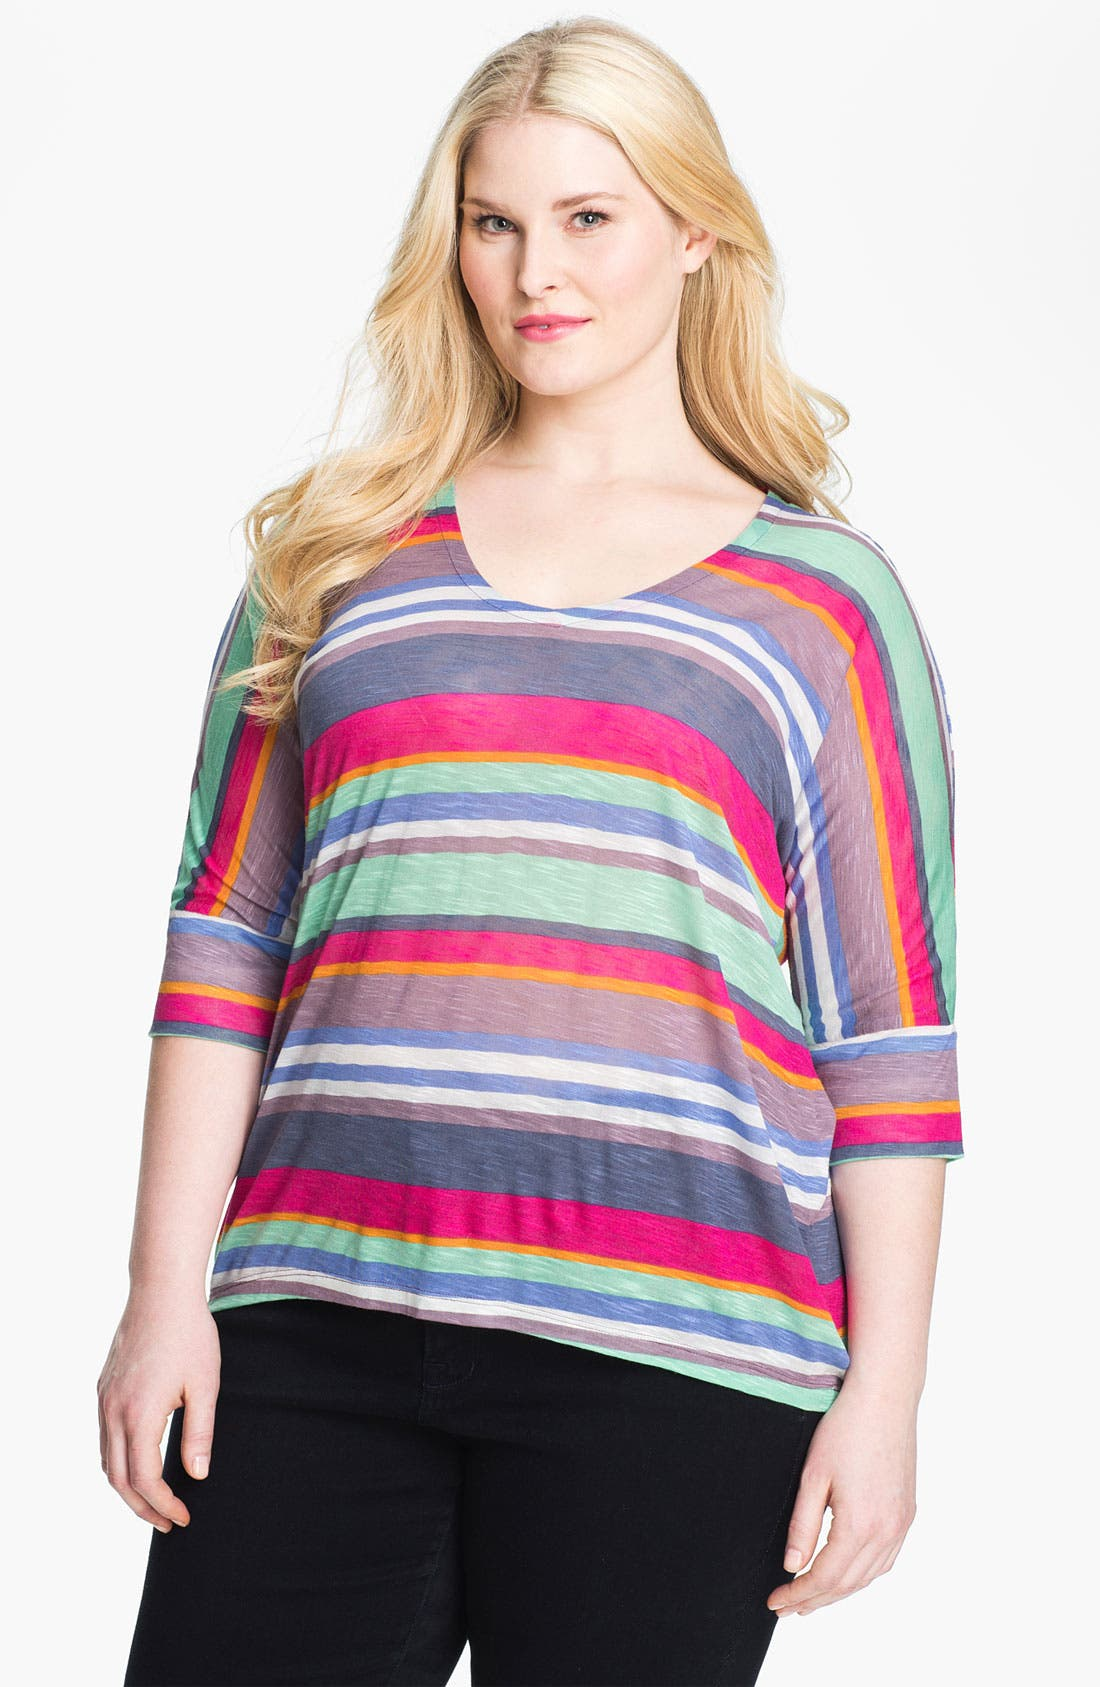 Alternate Image 1 Selected - Splendid 'Pensacola' Stripe Tee (Plus)